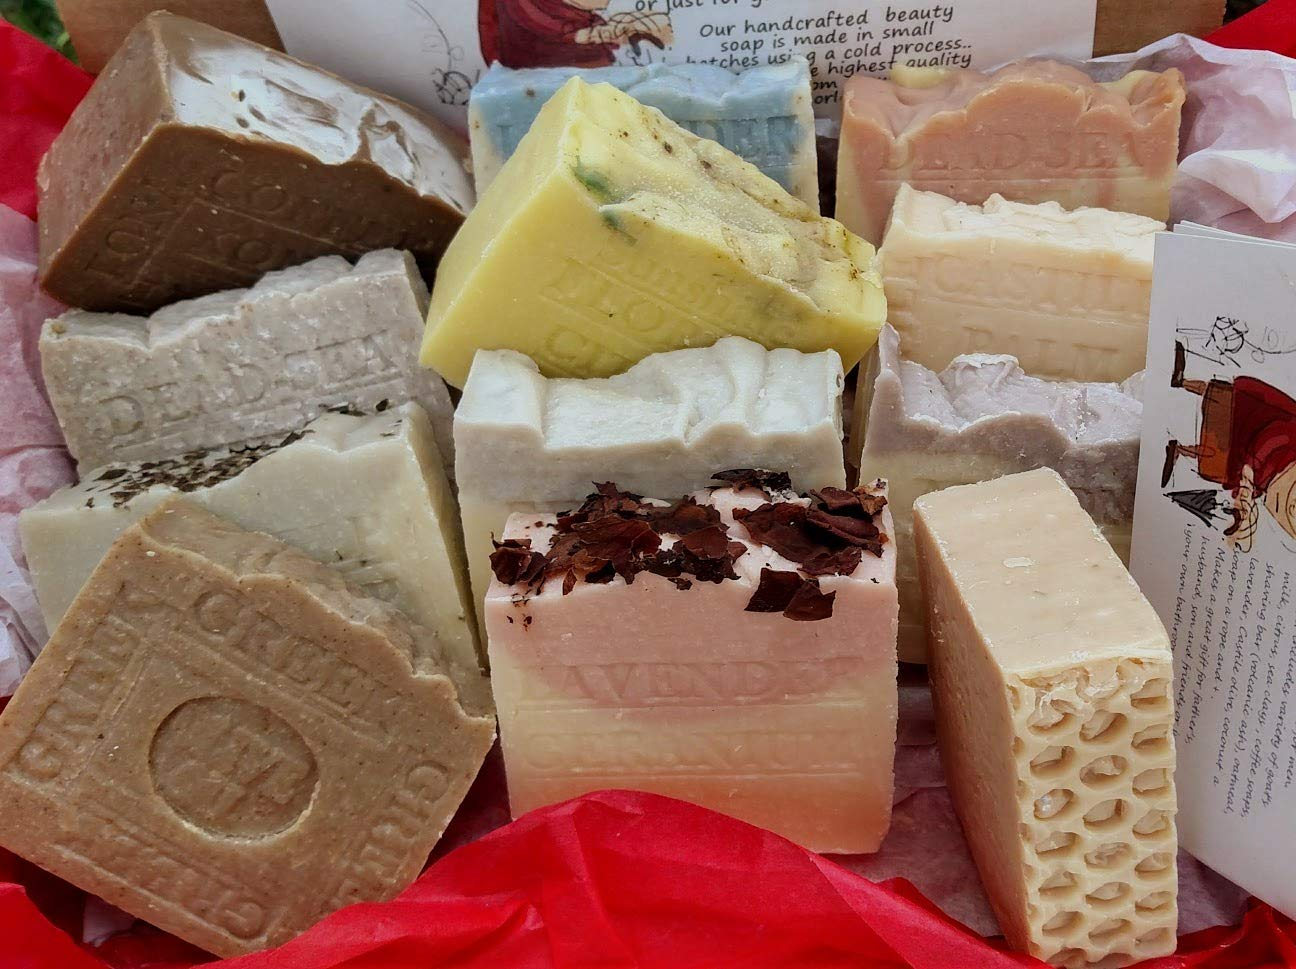 All Natural Handmade 12 Piece Soap Bar Gift Set - All Natural Artisan Soap